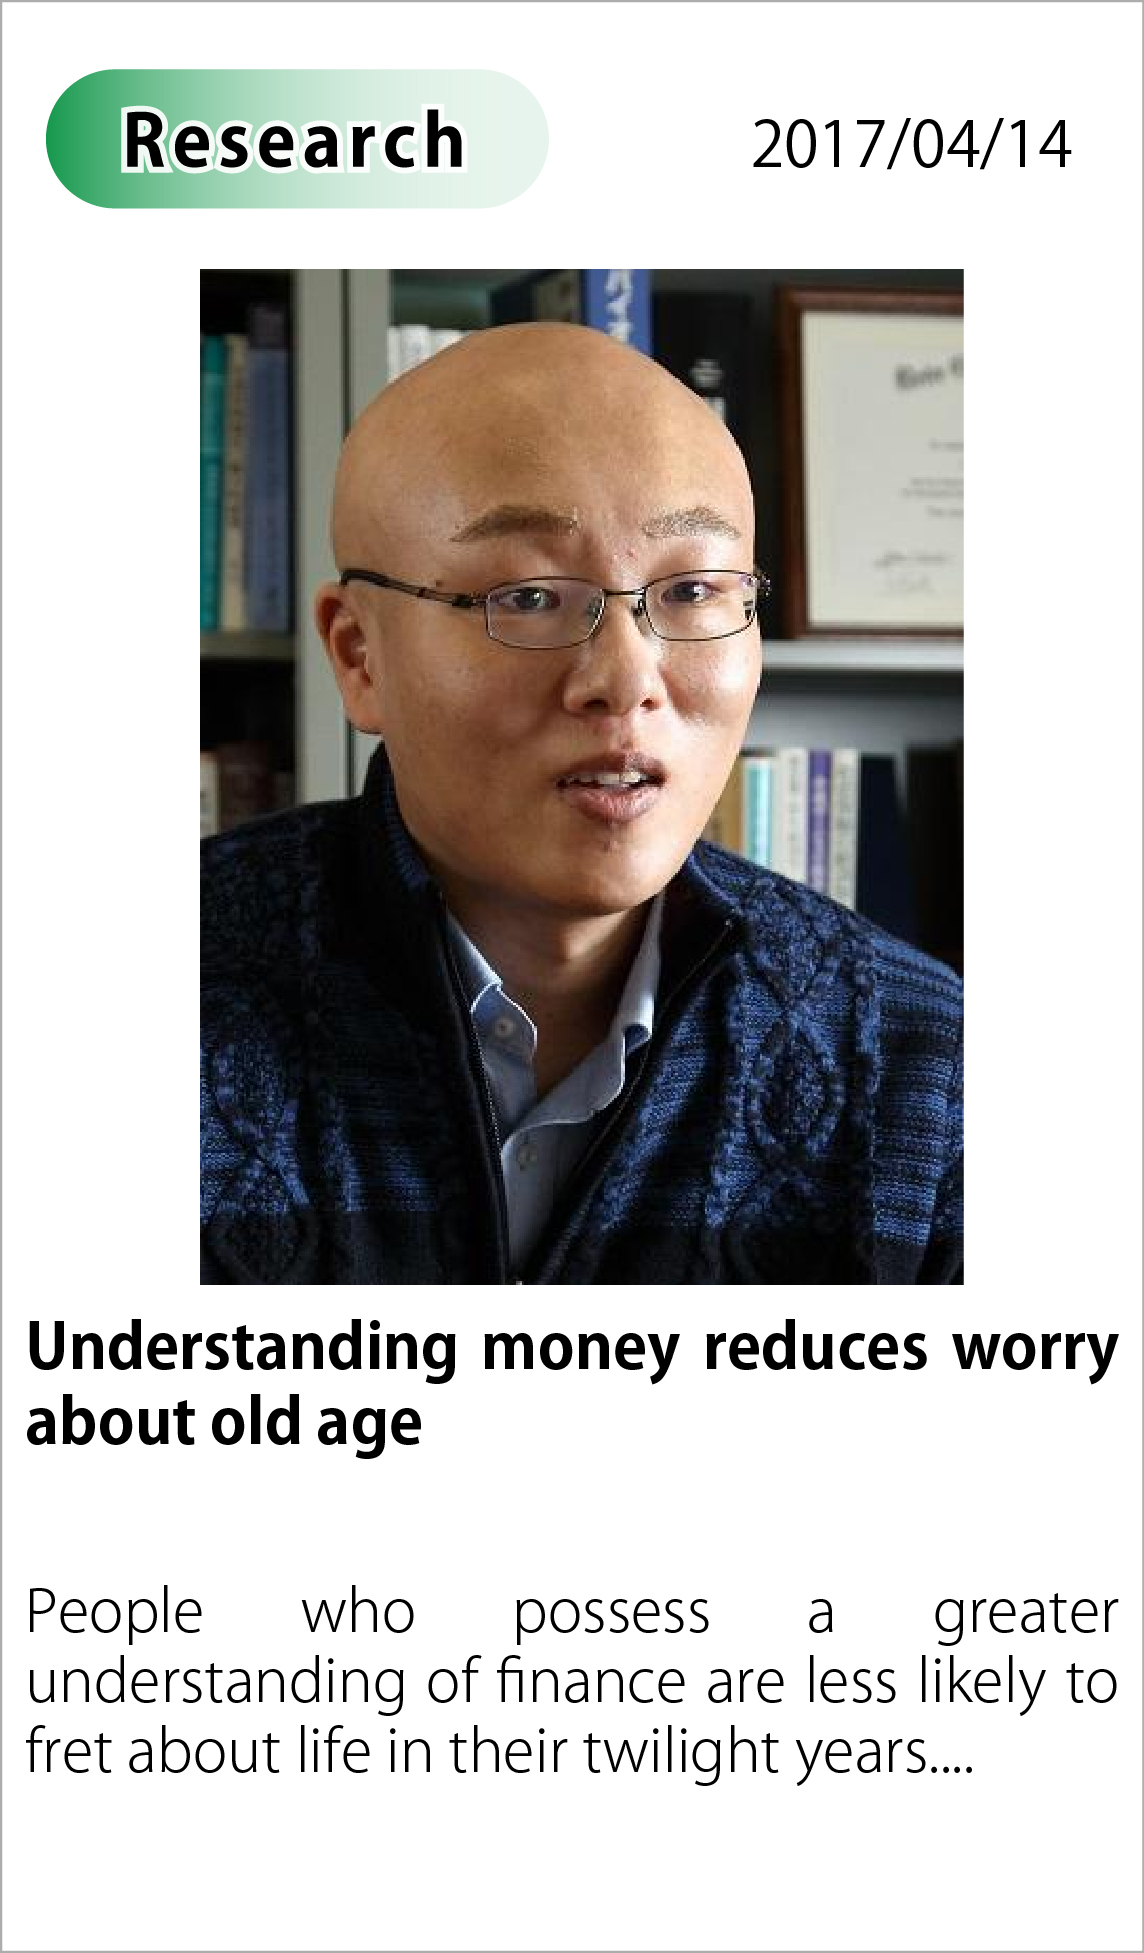 Understanding money reduces worry about old age